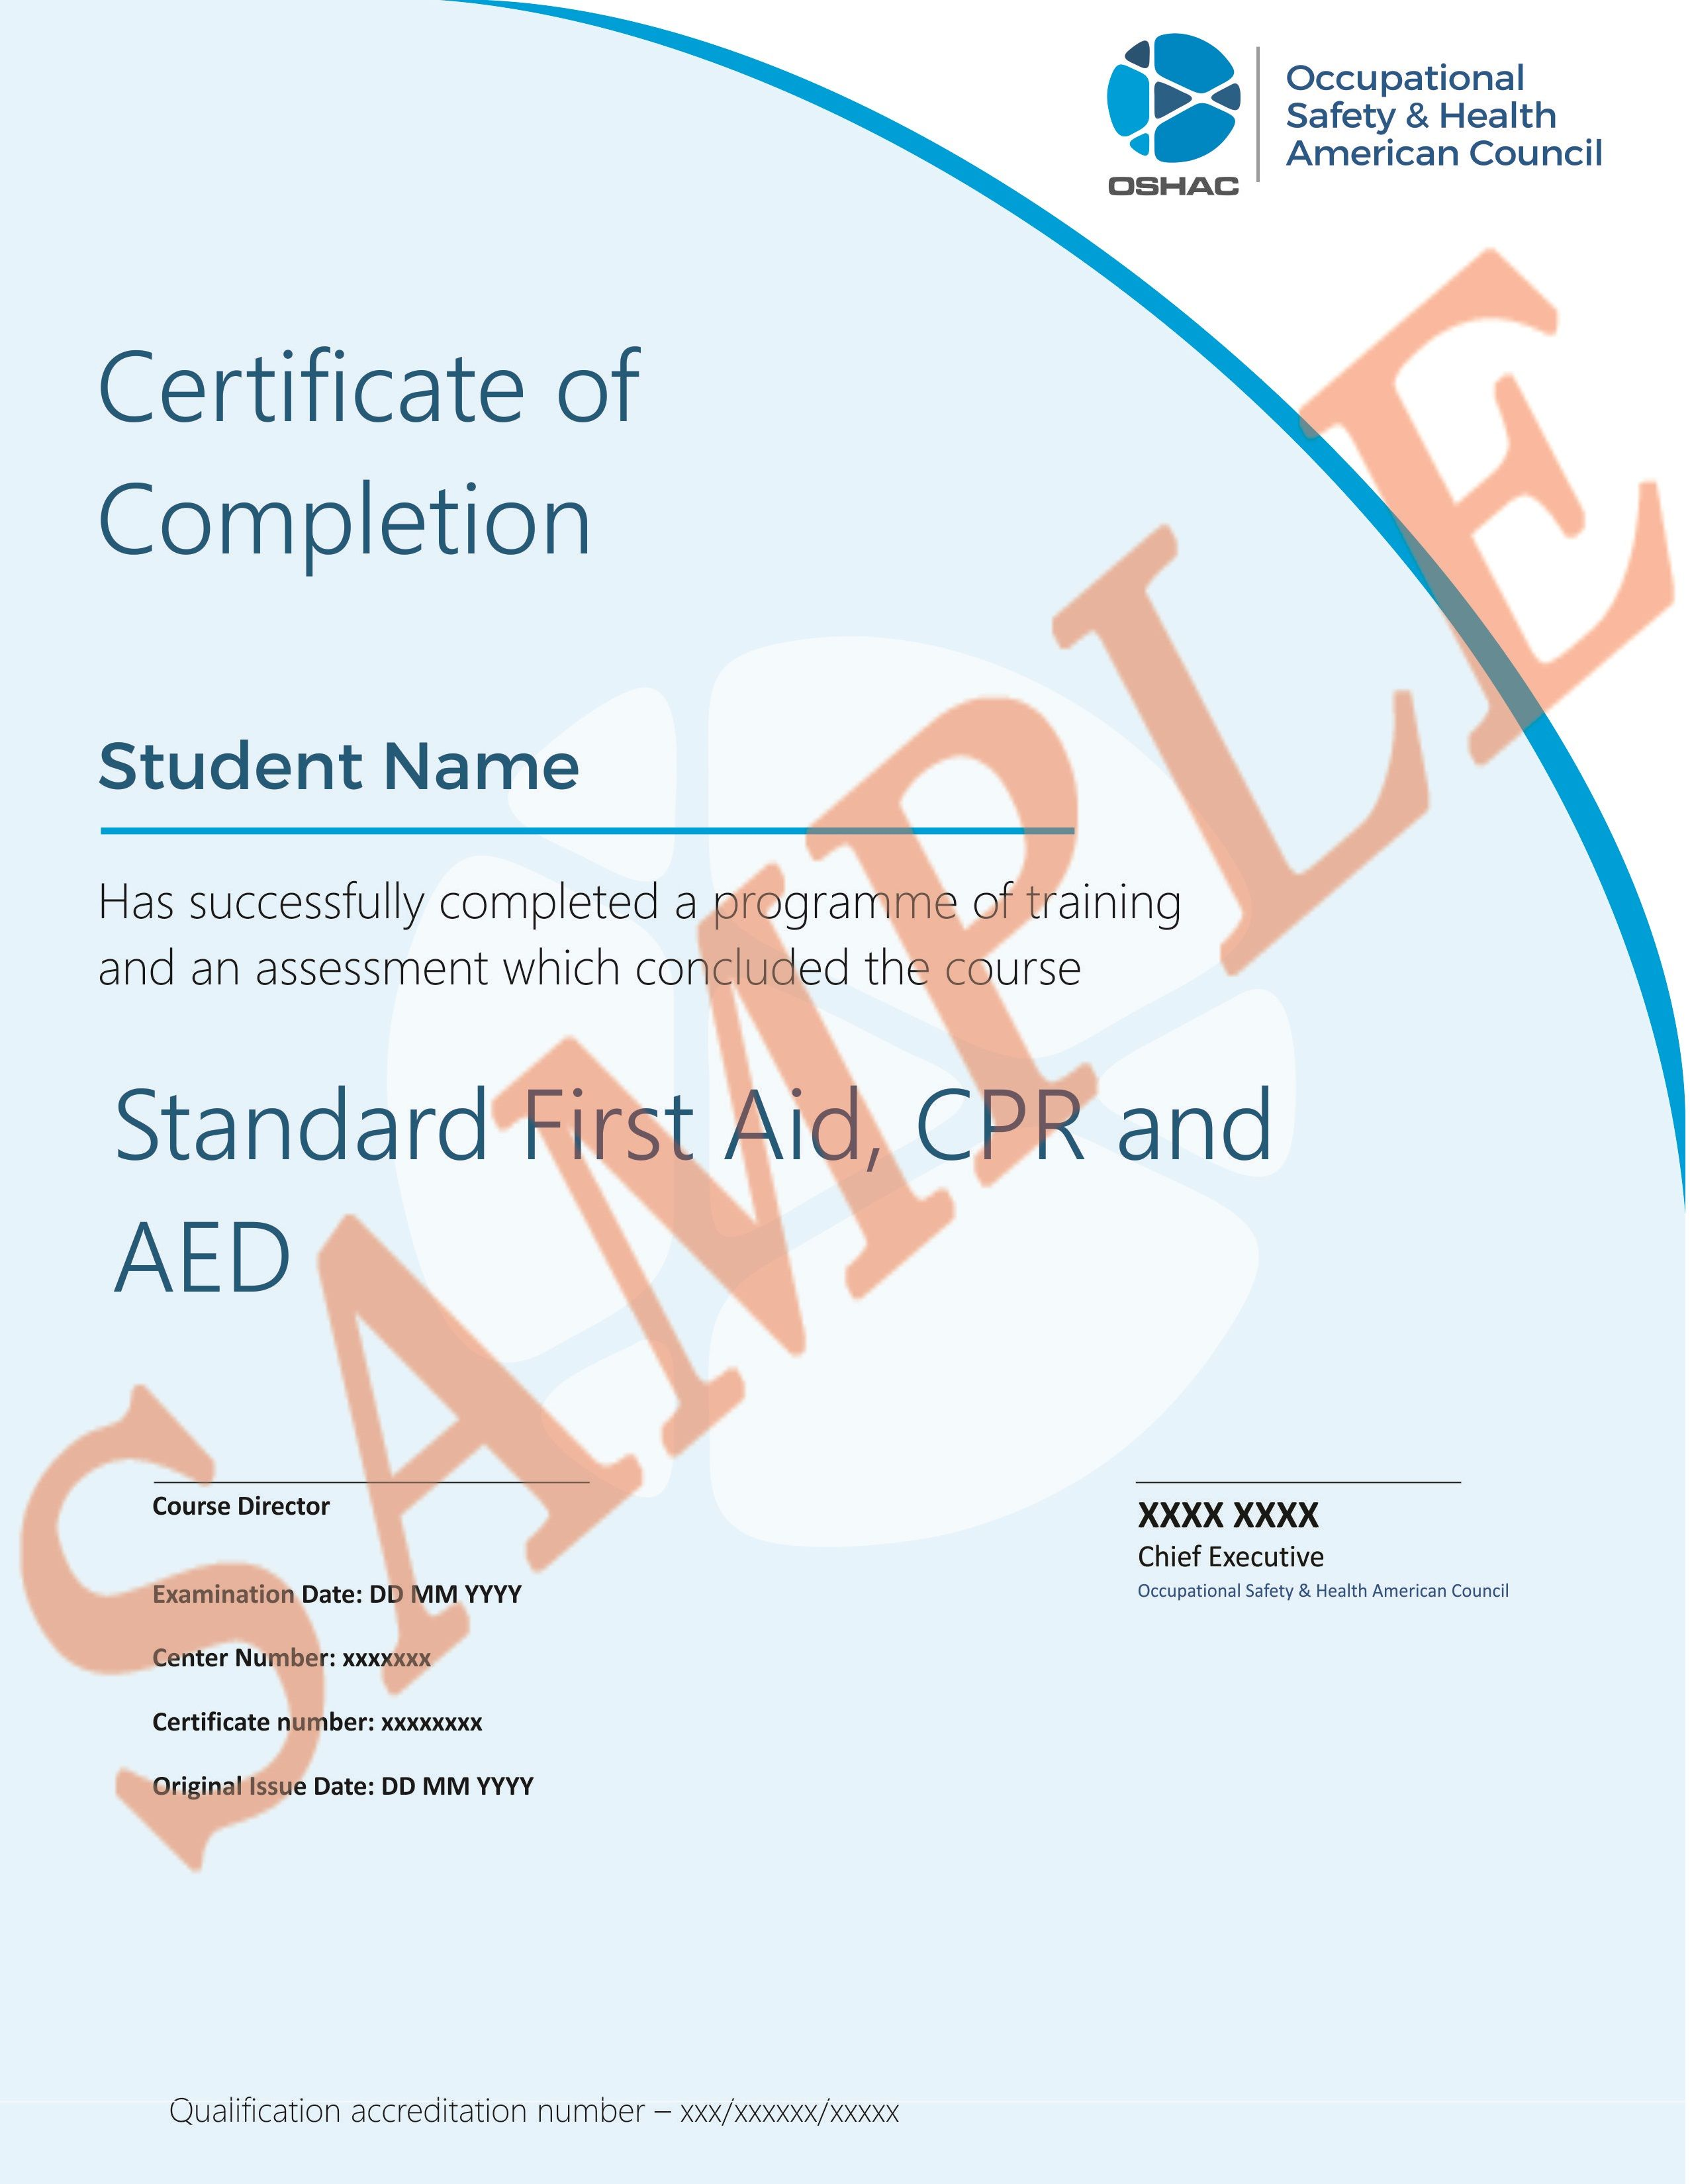 Standard First Aid Cpr Aed Occupational Health And Safety Fire Safety Course Safety Courses